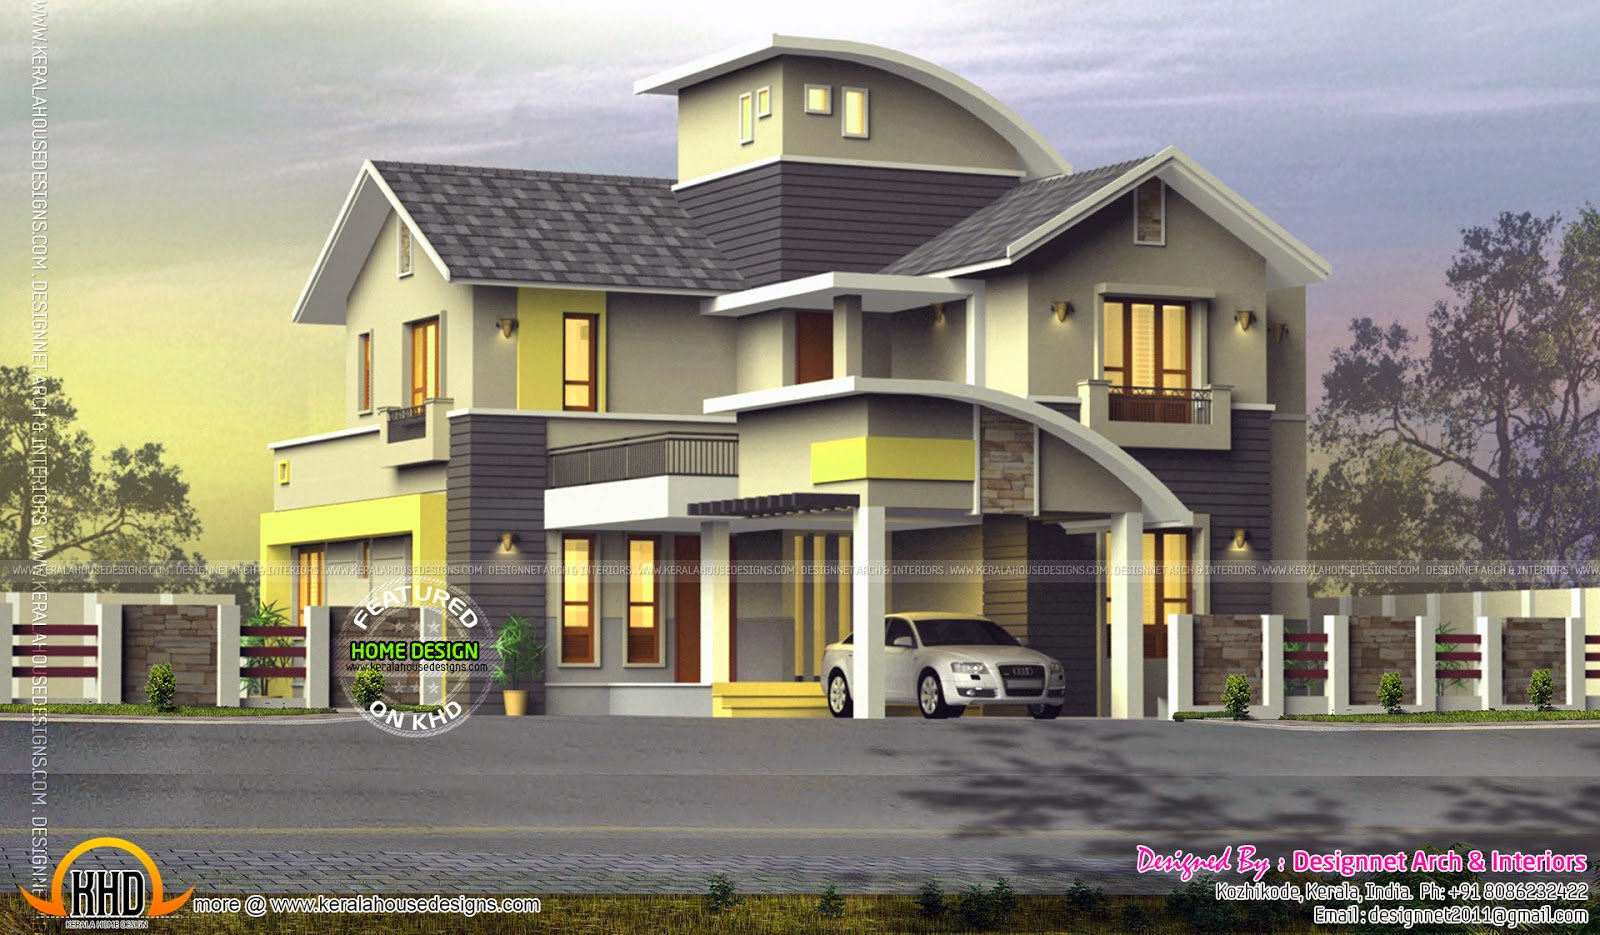 New model houses in kerala photos images for Kerala house models photos